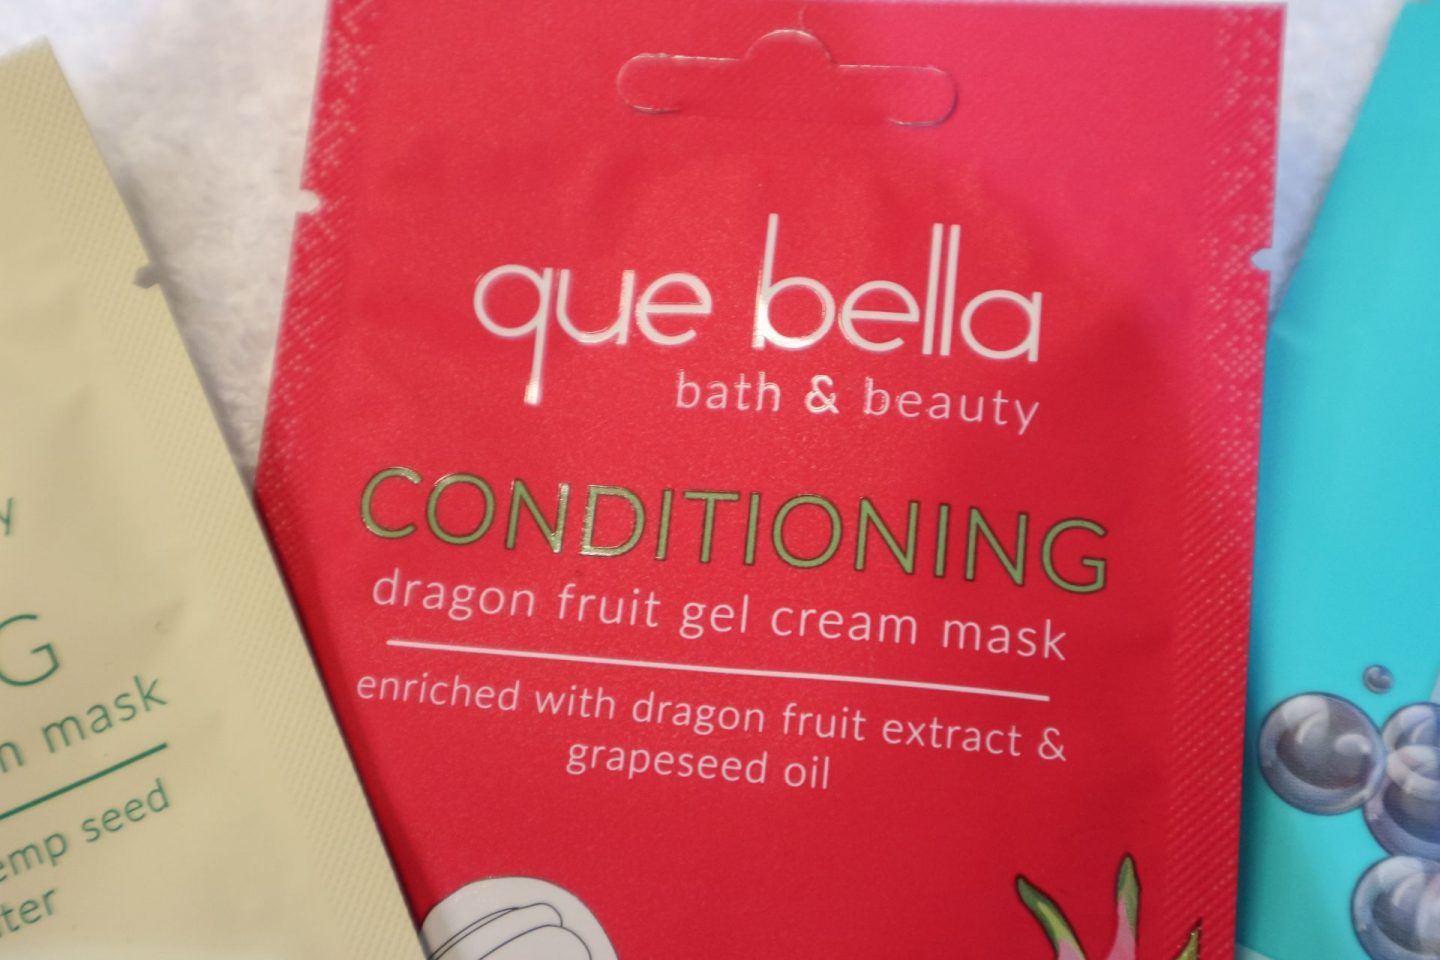 Que Bella Conditioning Dragon Fruit Gel Cream Mask review